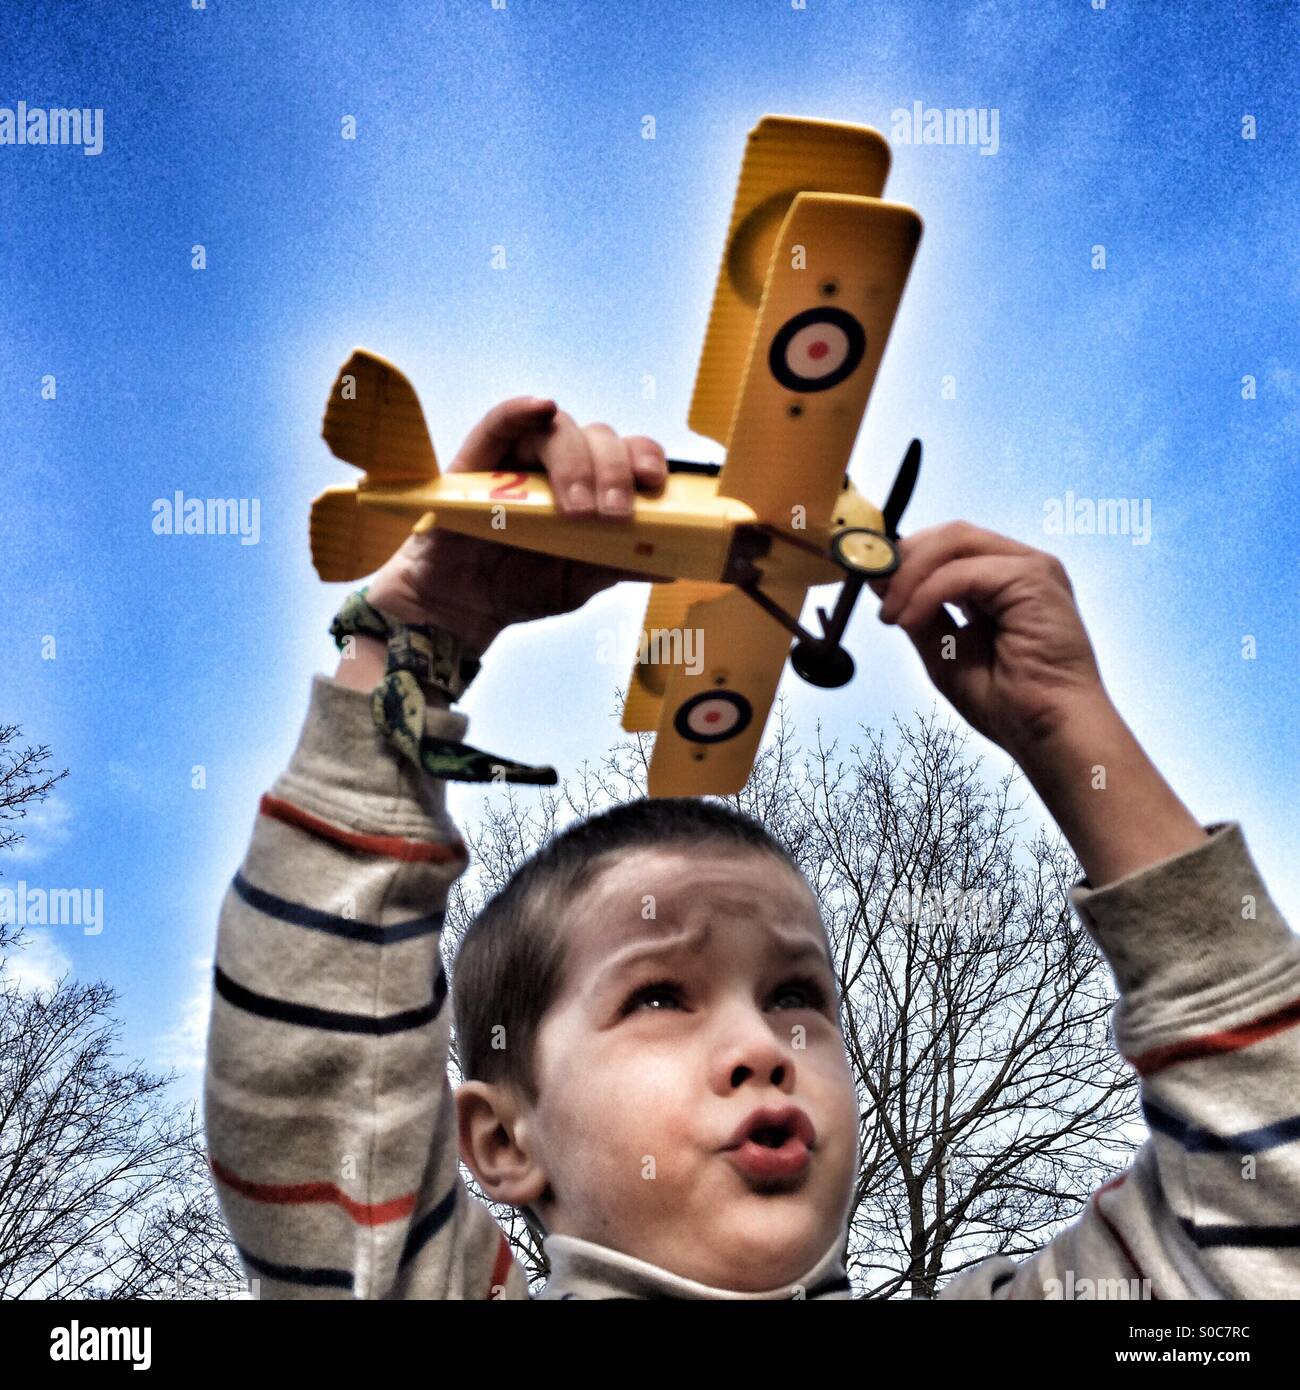 Young boy flying toy biplane - Stock Image